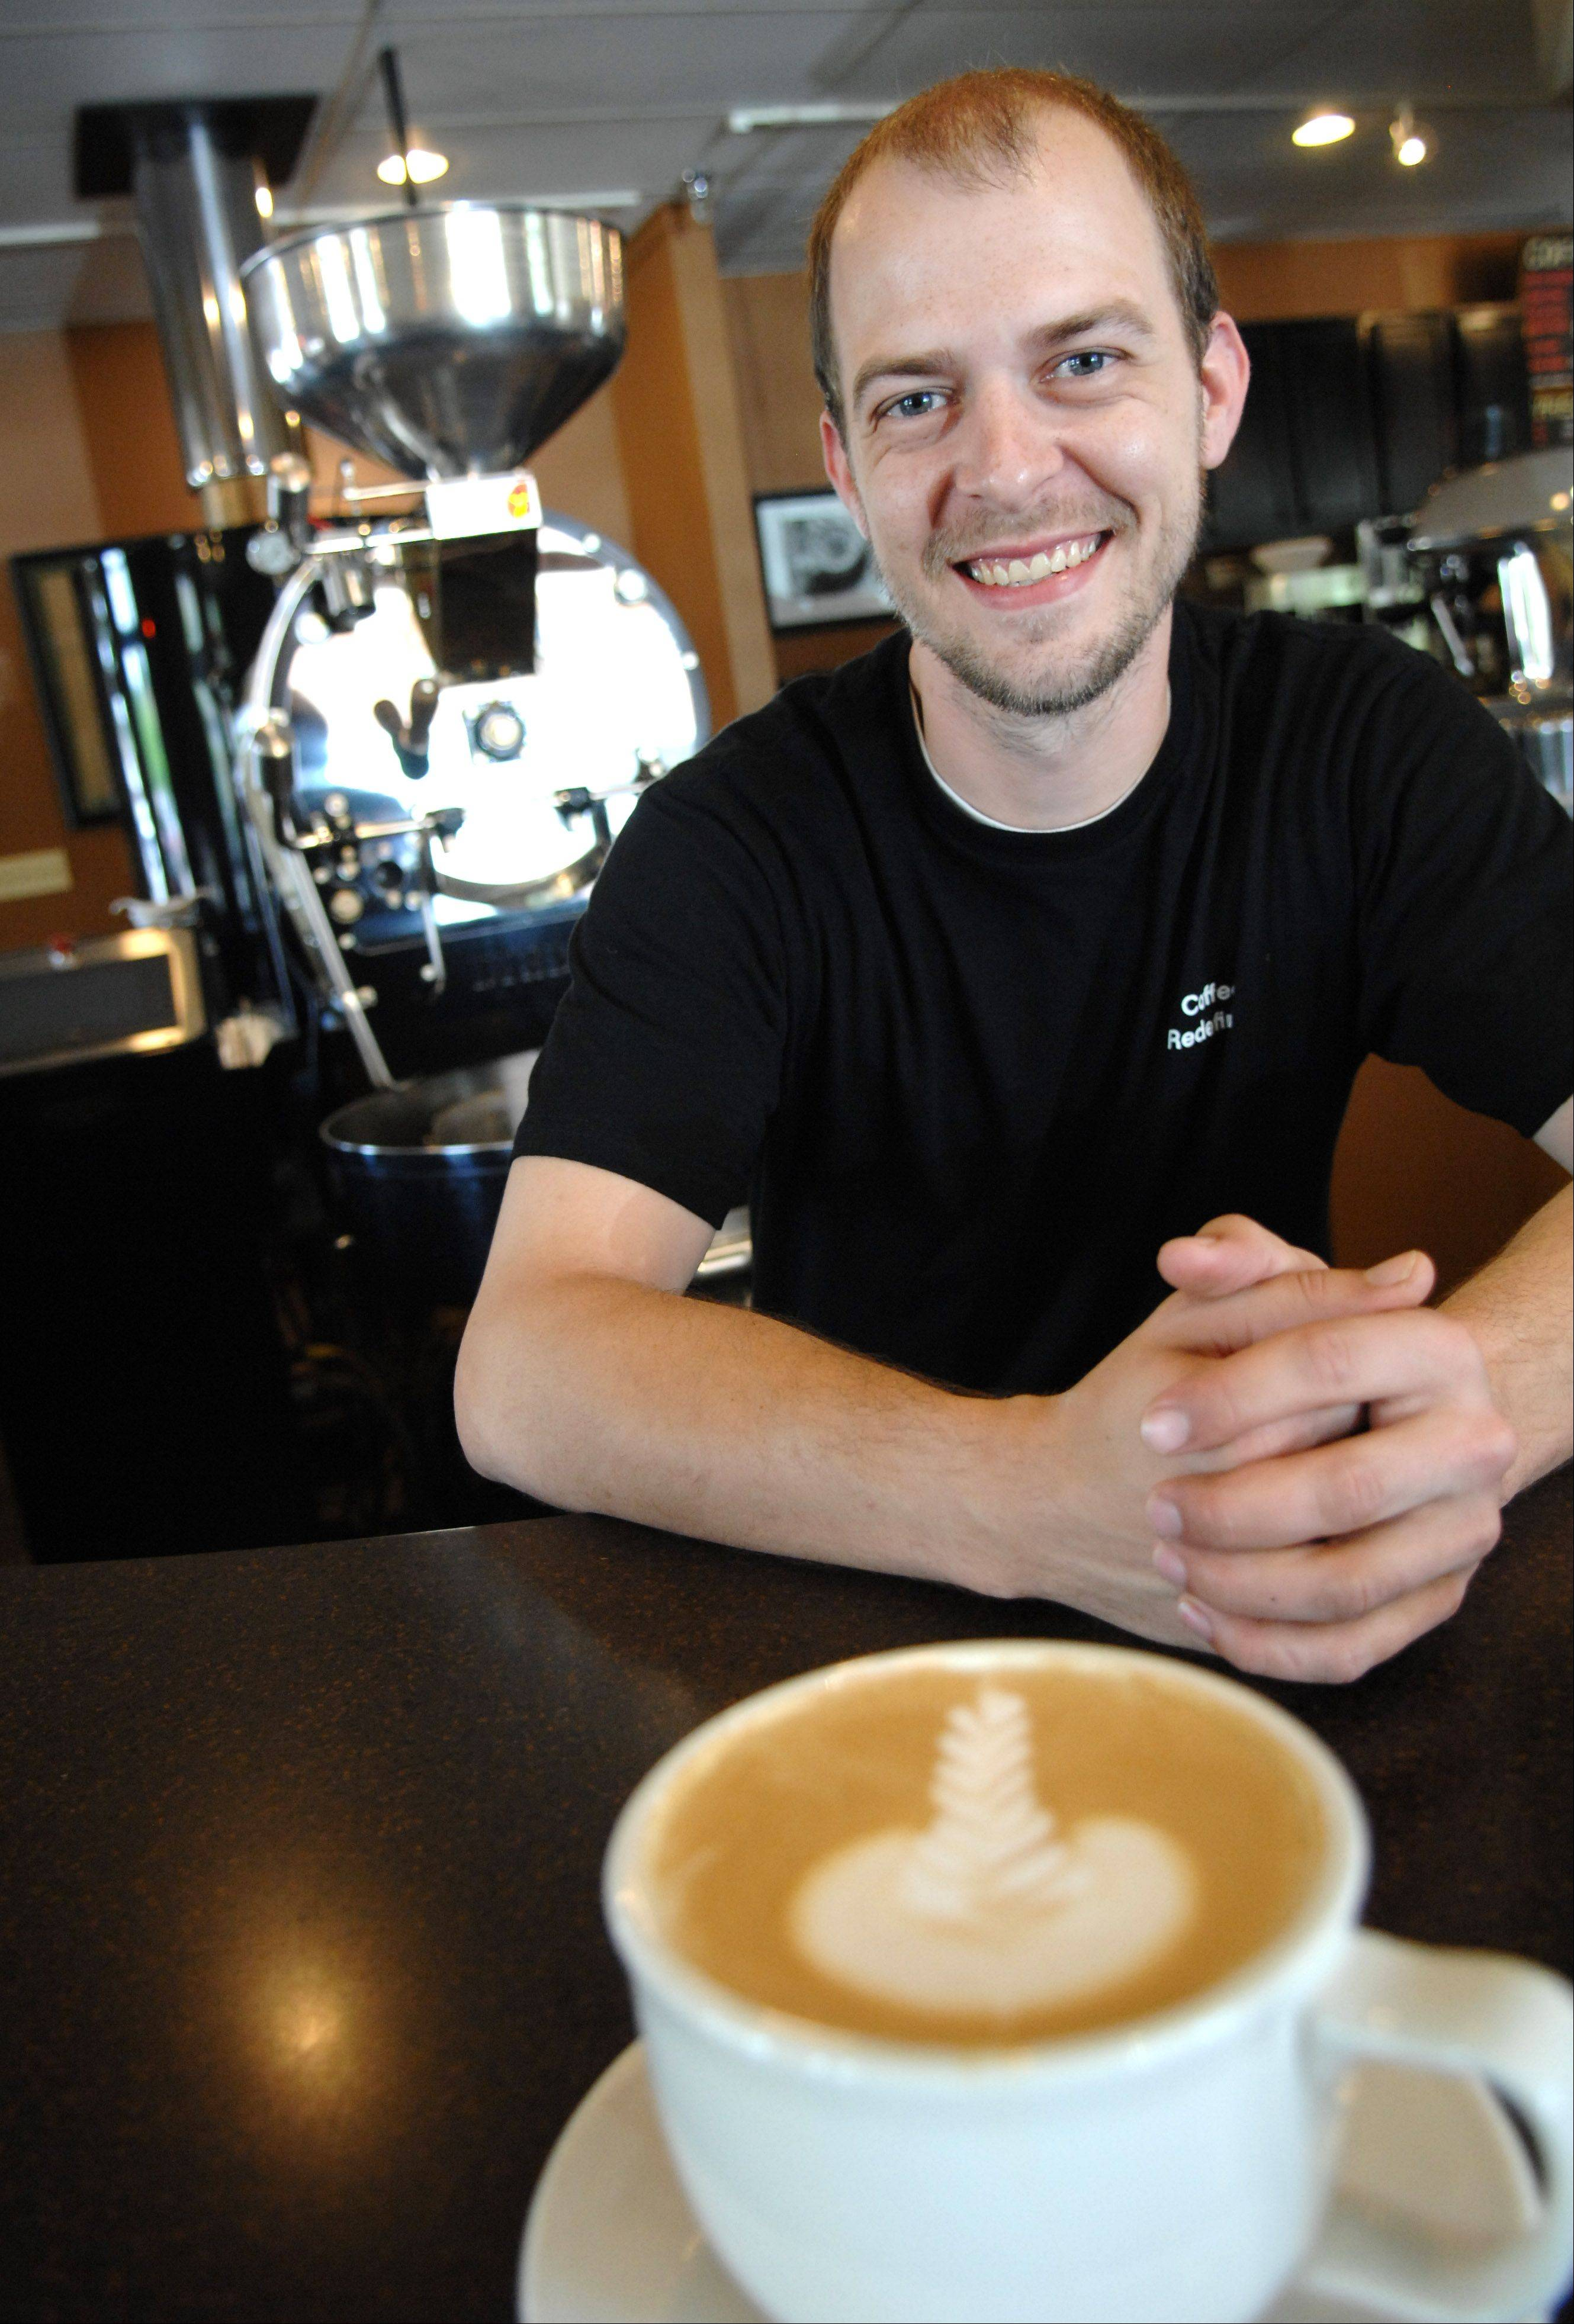 Barista Michael Burkholder of Arcedium Coffeehouse in St. Charles is proud of his coffeehouse�s top eight finish in regional competition.